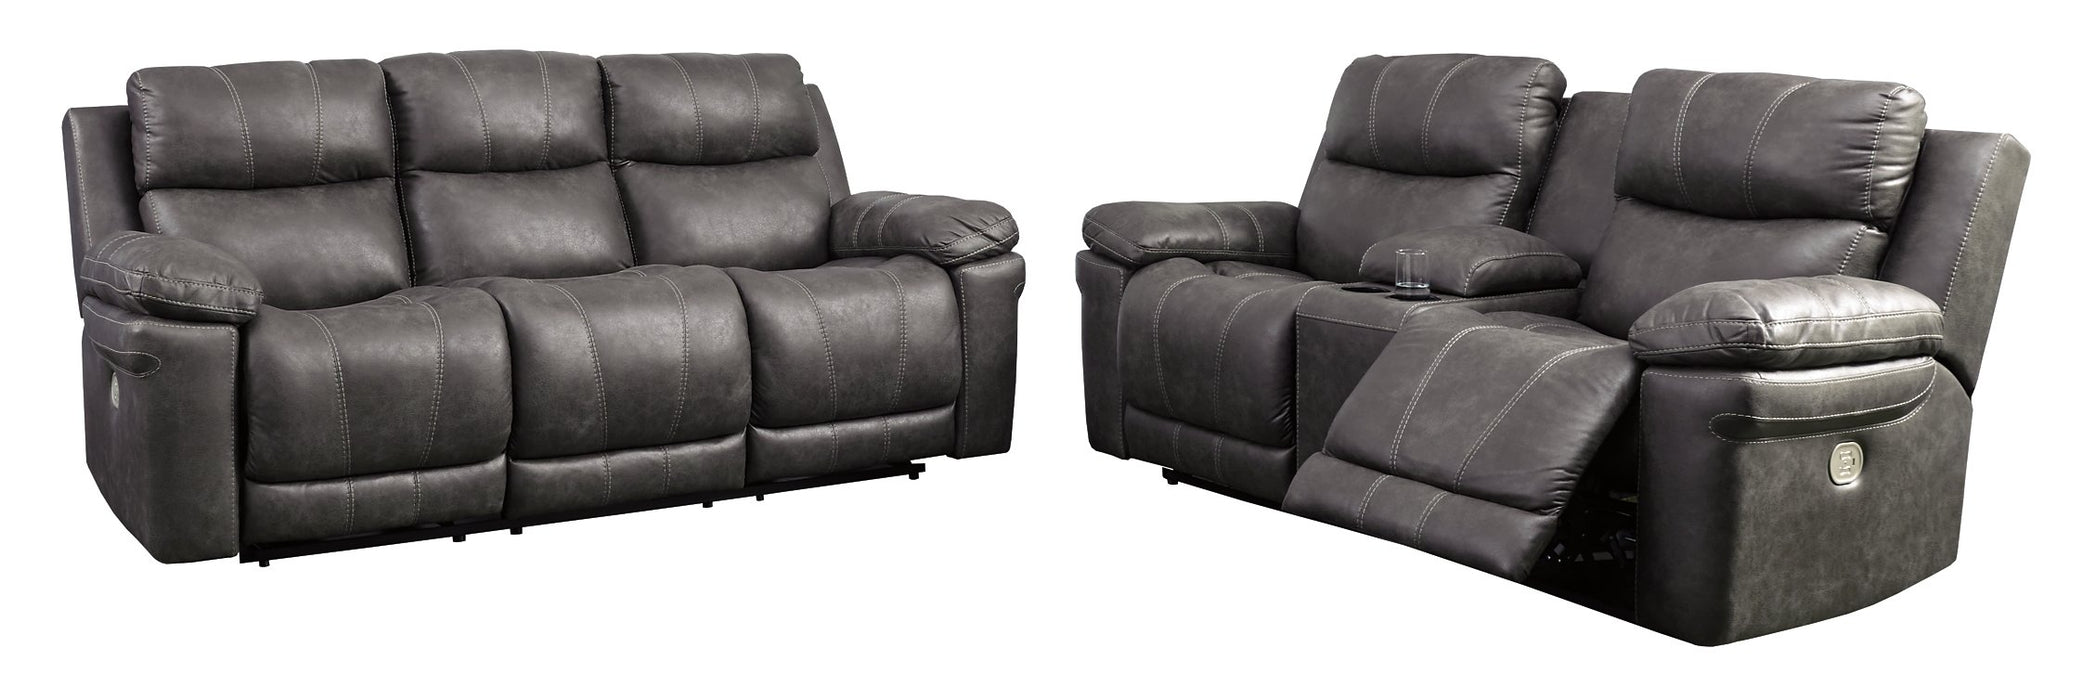 Erlangen Signature Design Contemporary 2-Piece Living Room Set